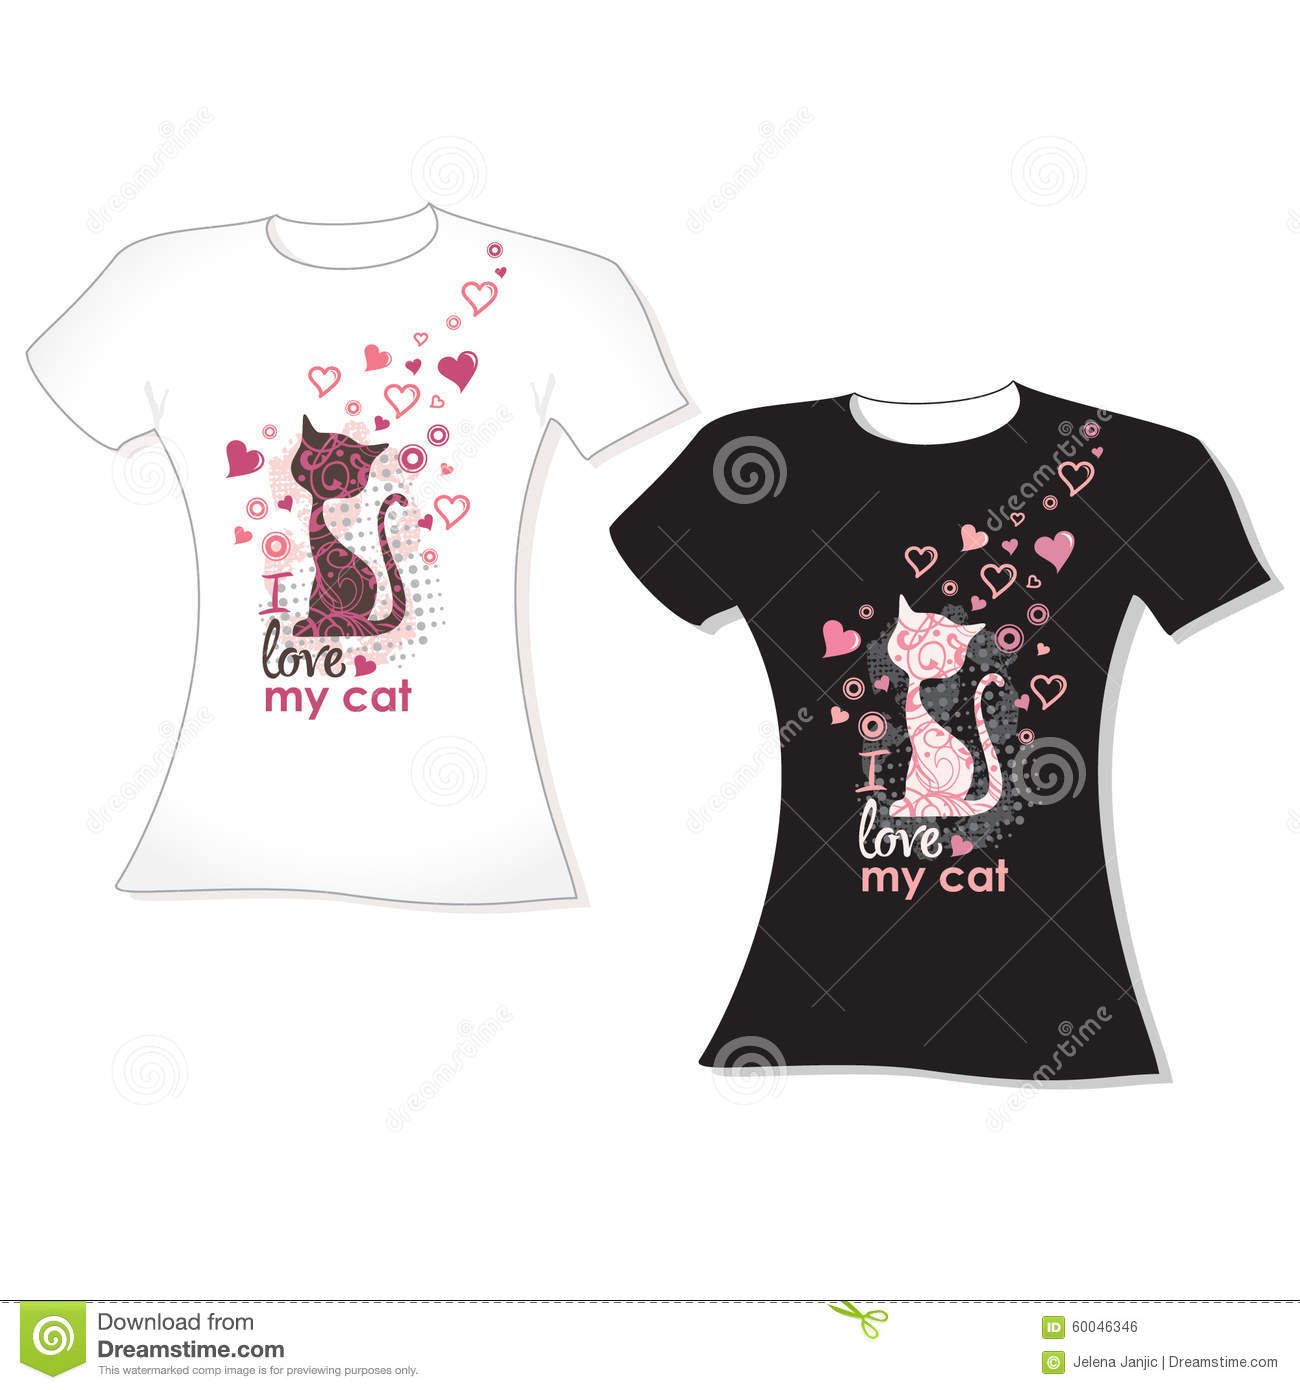 Silhouette Stock With Shirt DesignCat Vector T Hearts SzMpUqV